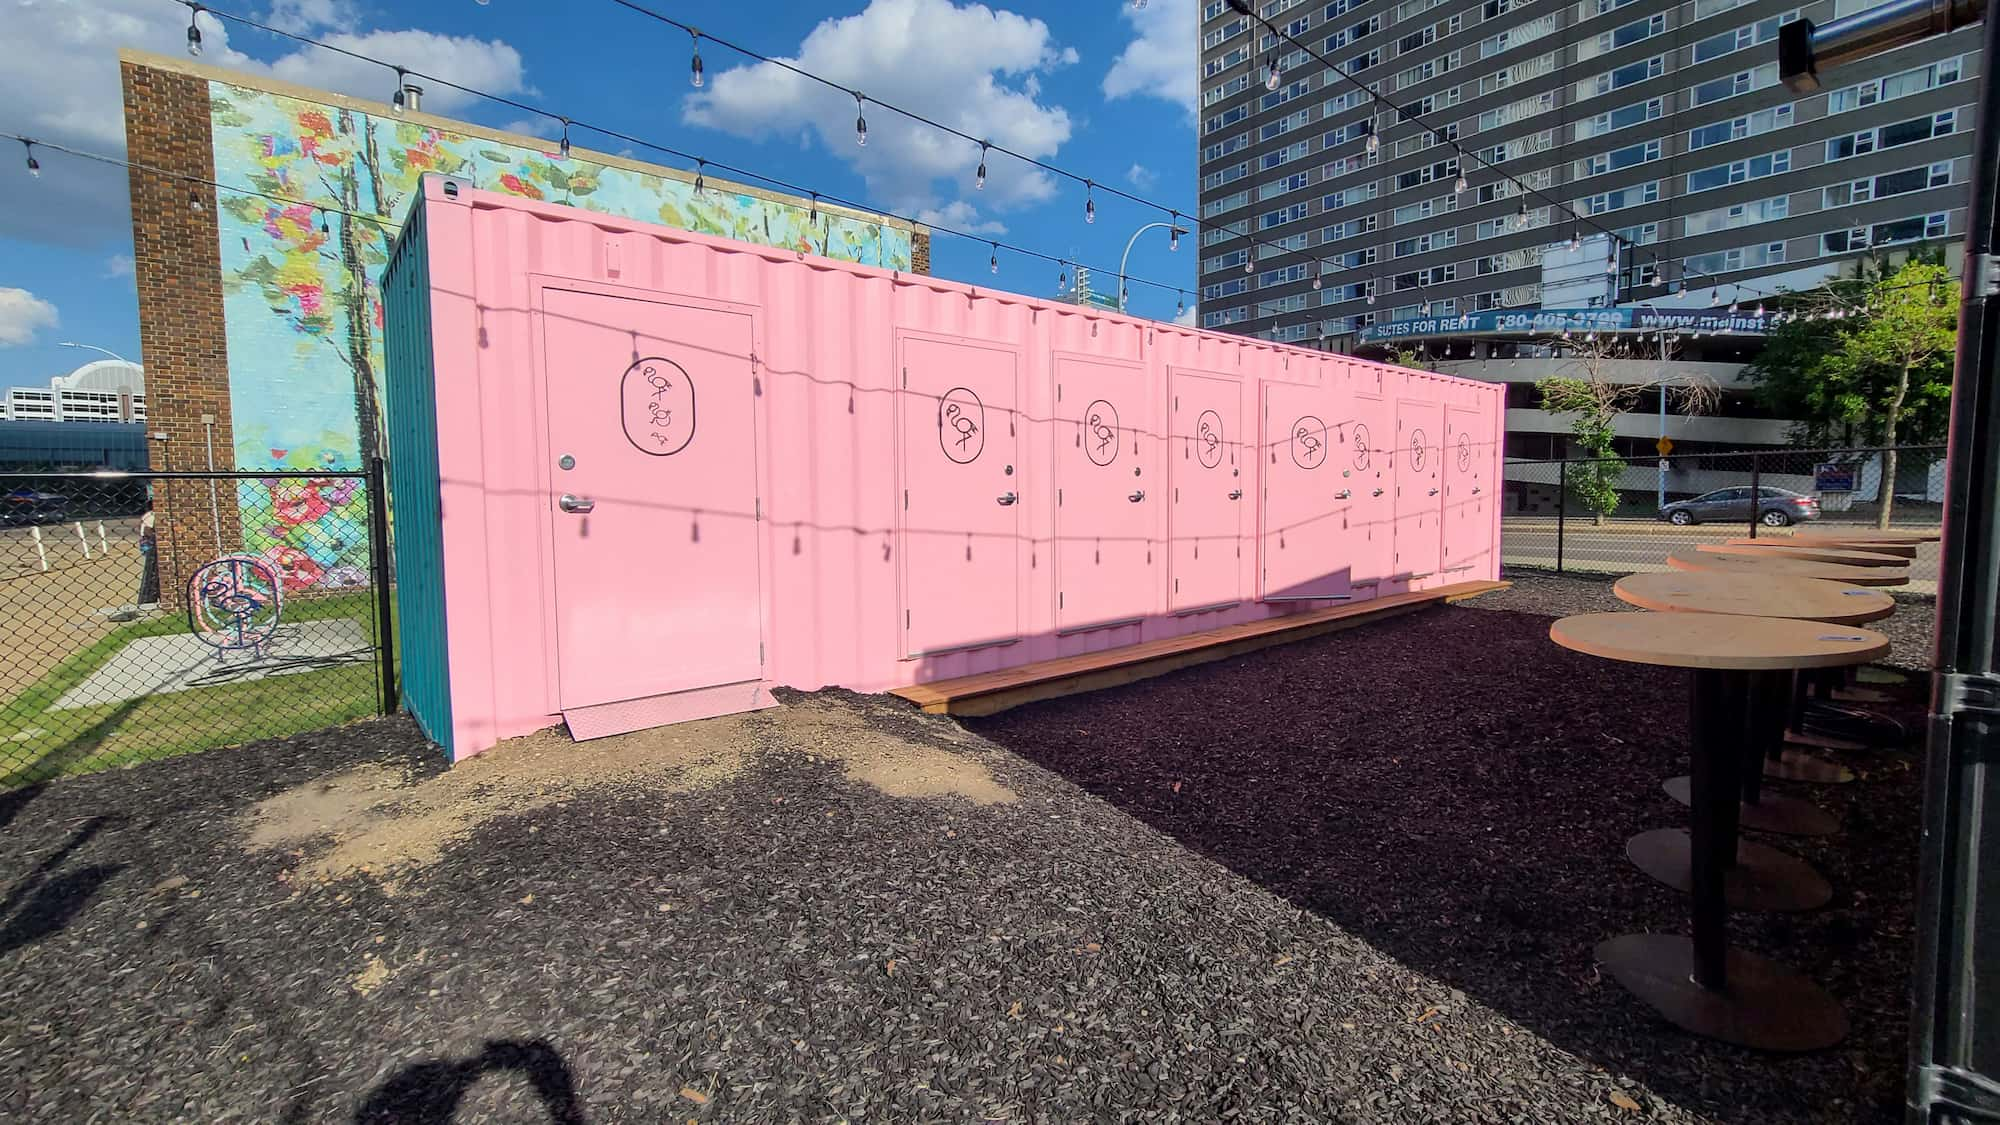 bespoke washroom conversion with pink shipping containers in an event space